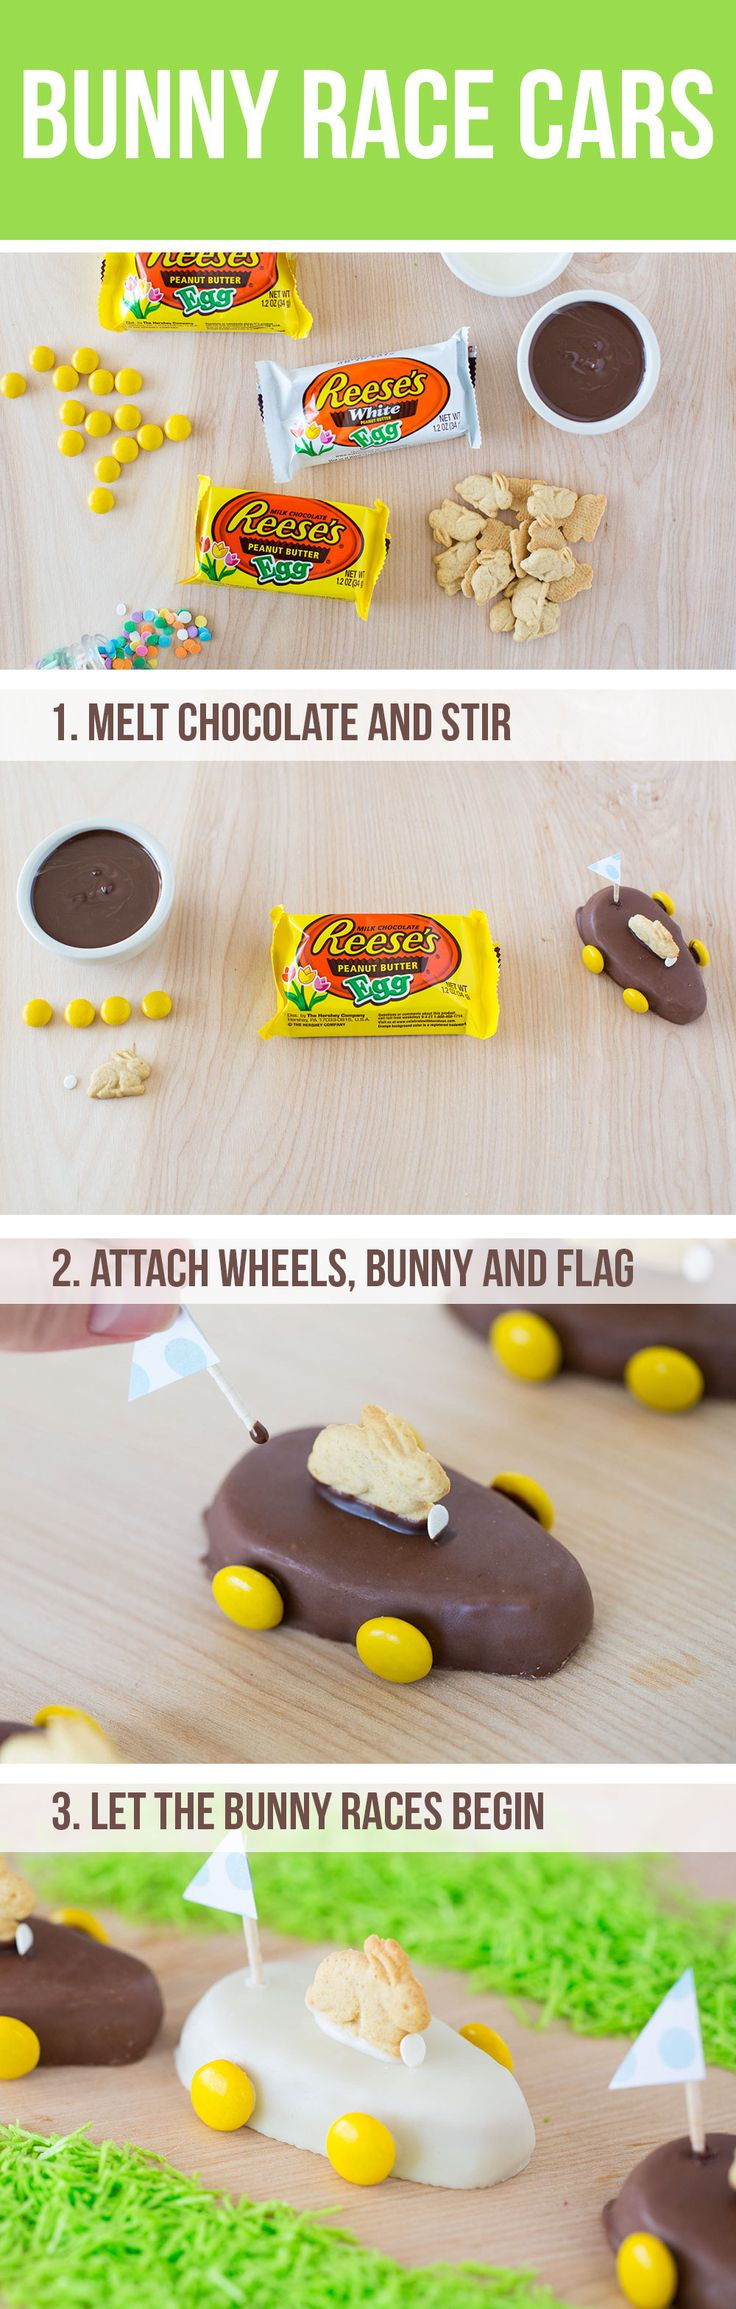 Easter Bunny Treats …the most adorable bunny race cars and chocolate peanut butter bunnies! Your kids will love these mini desserts for Easter.